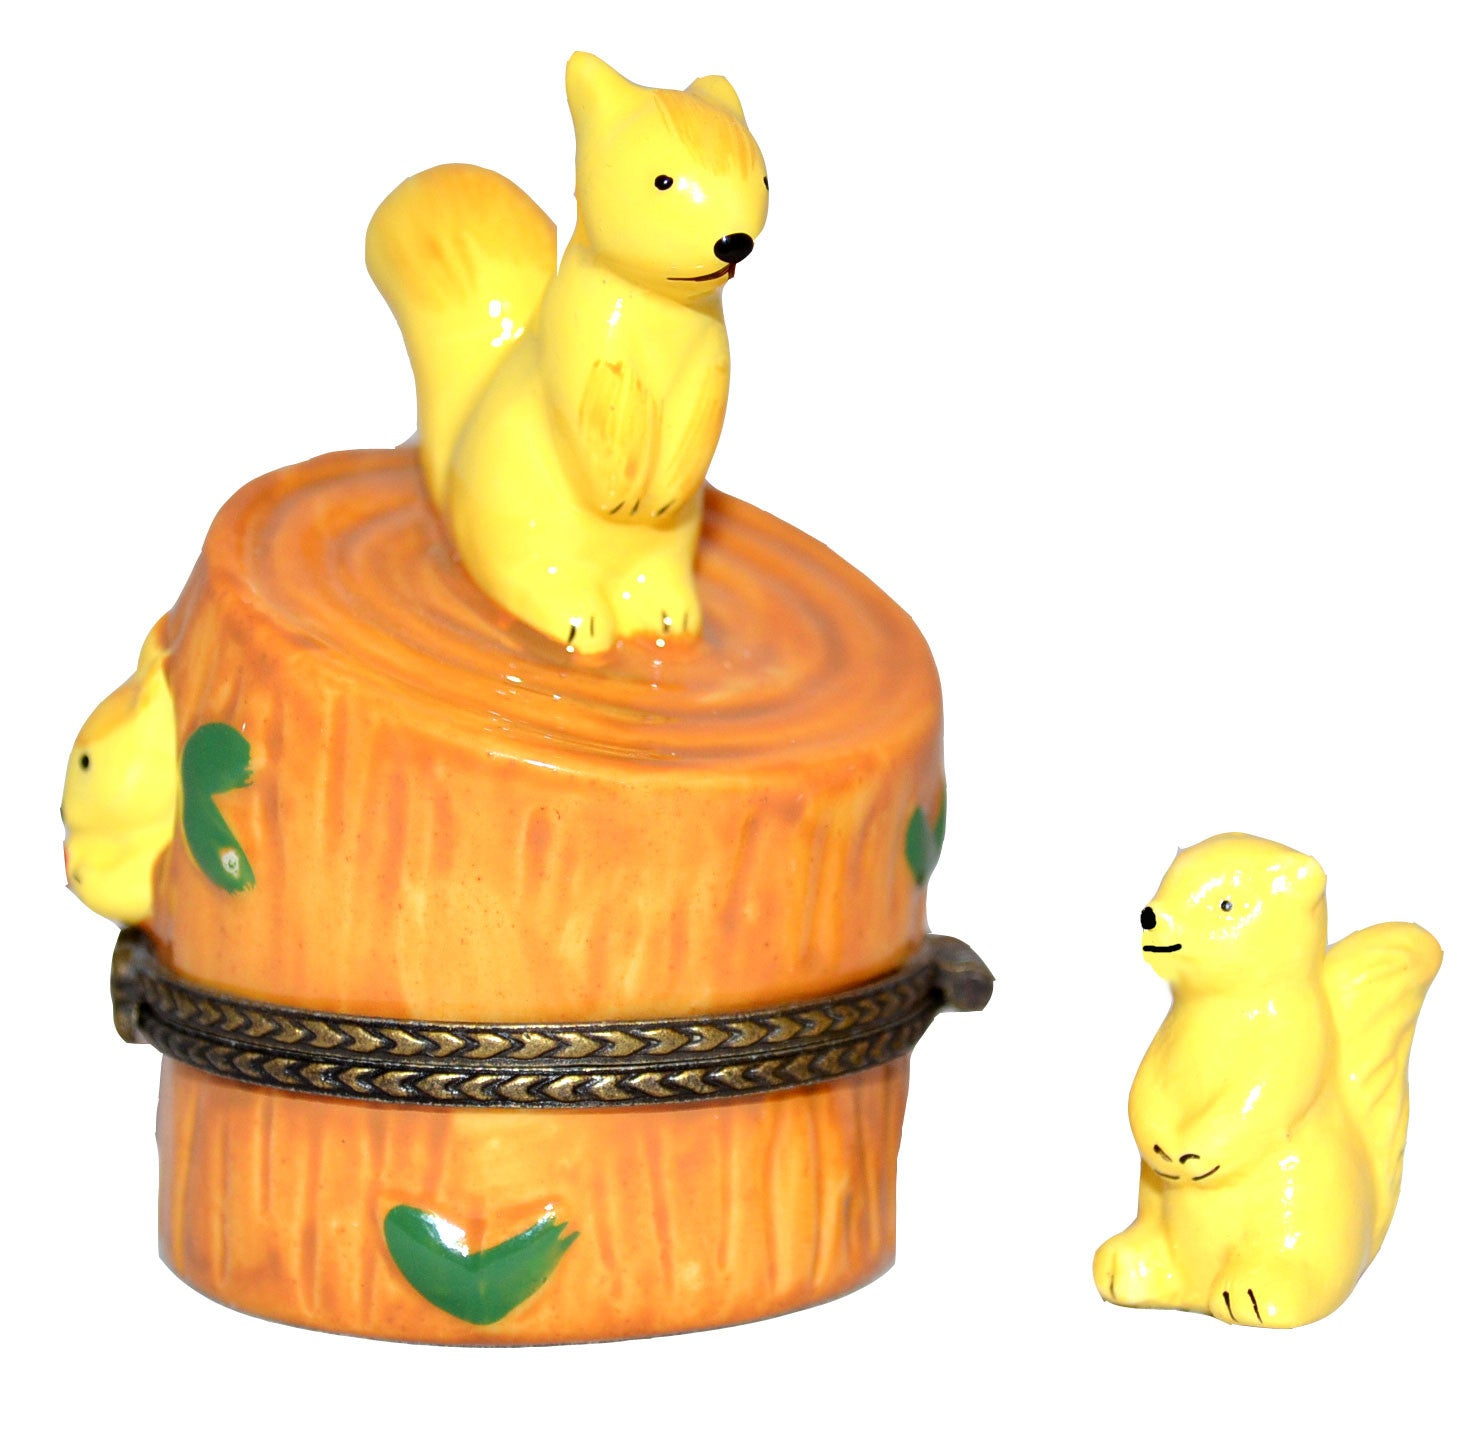 Squirrel Trinket Set - Squirrels and More